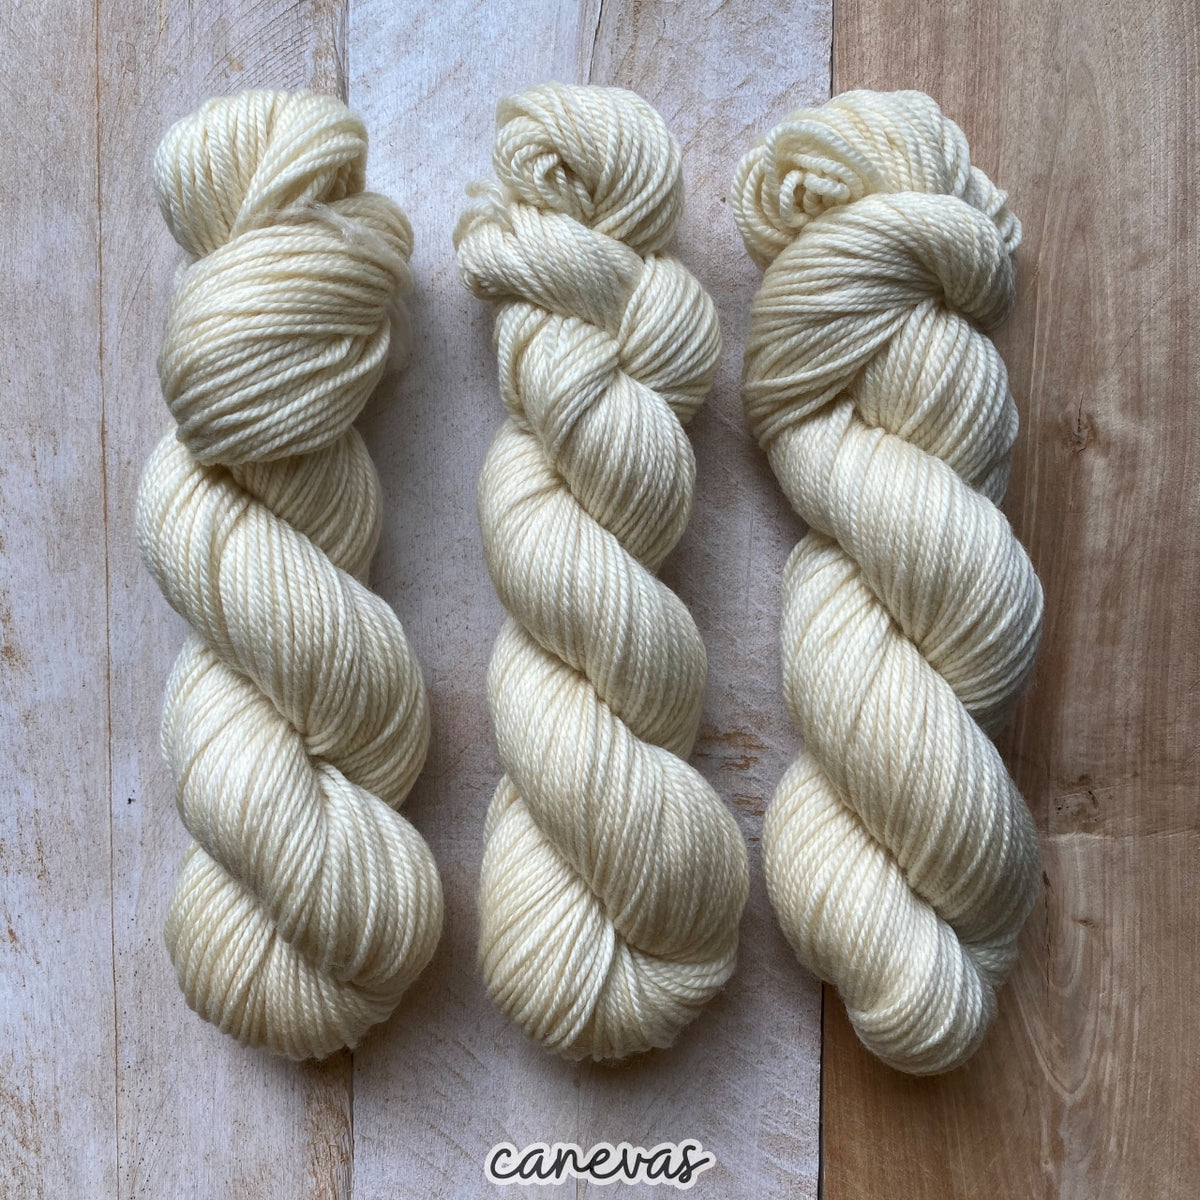 CANEVAS by Louise Robert Design | MERINO WORSTED hand-dyed semi-solid yarn